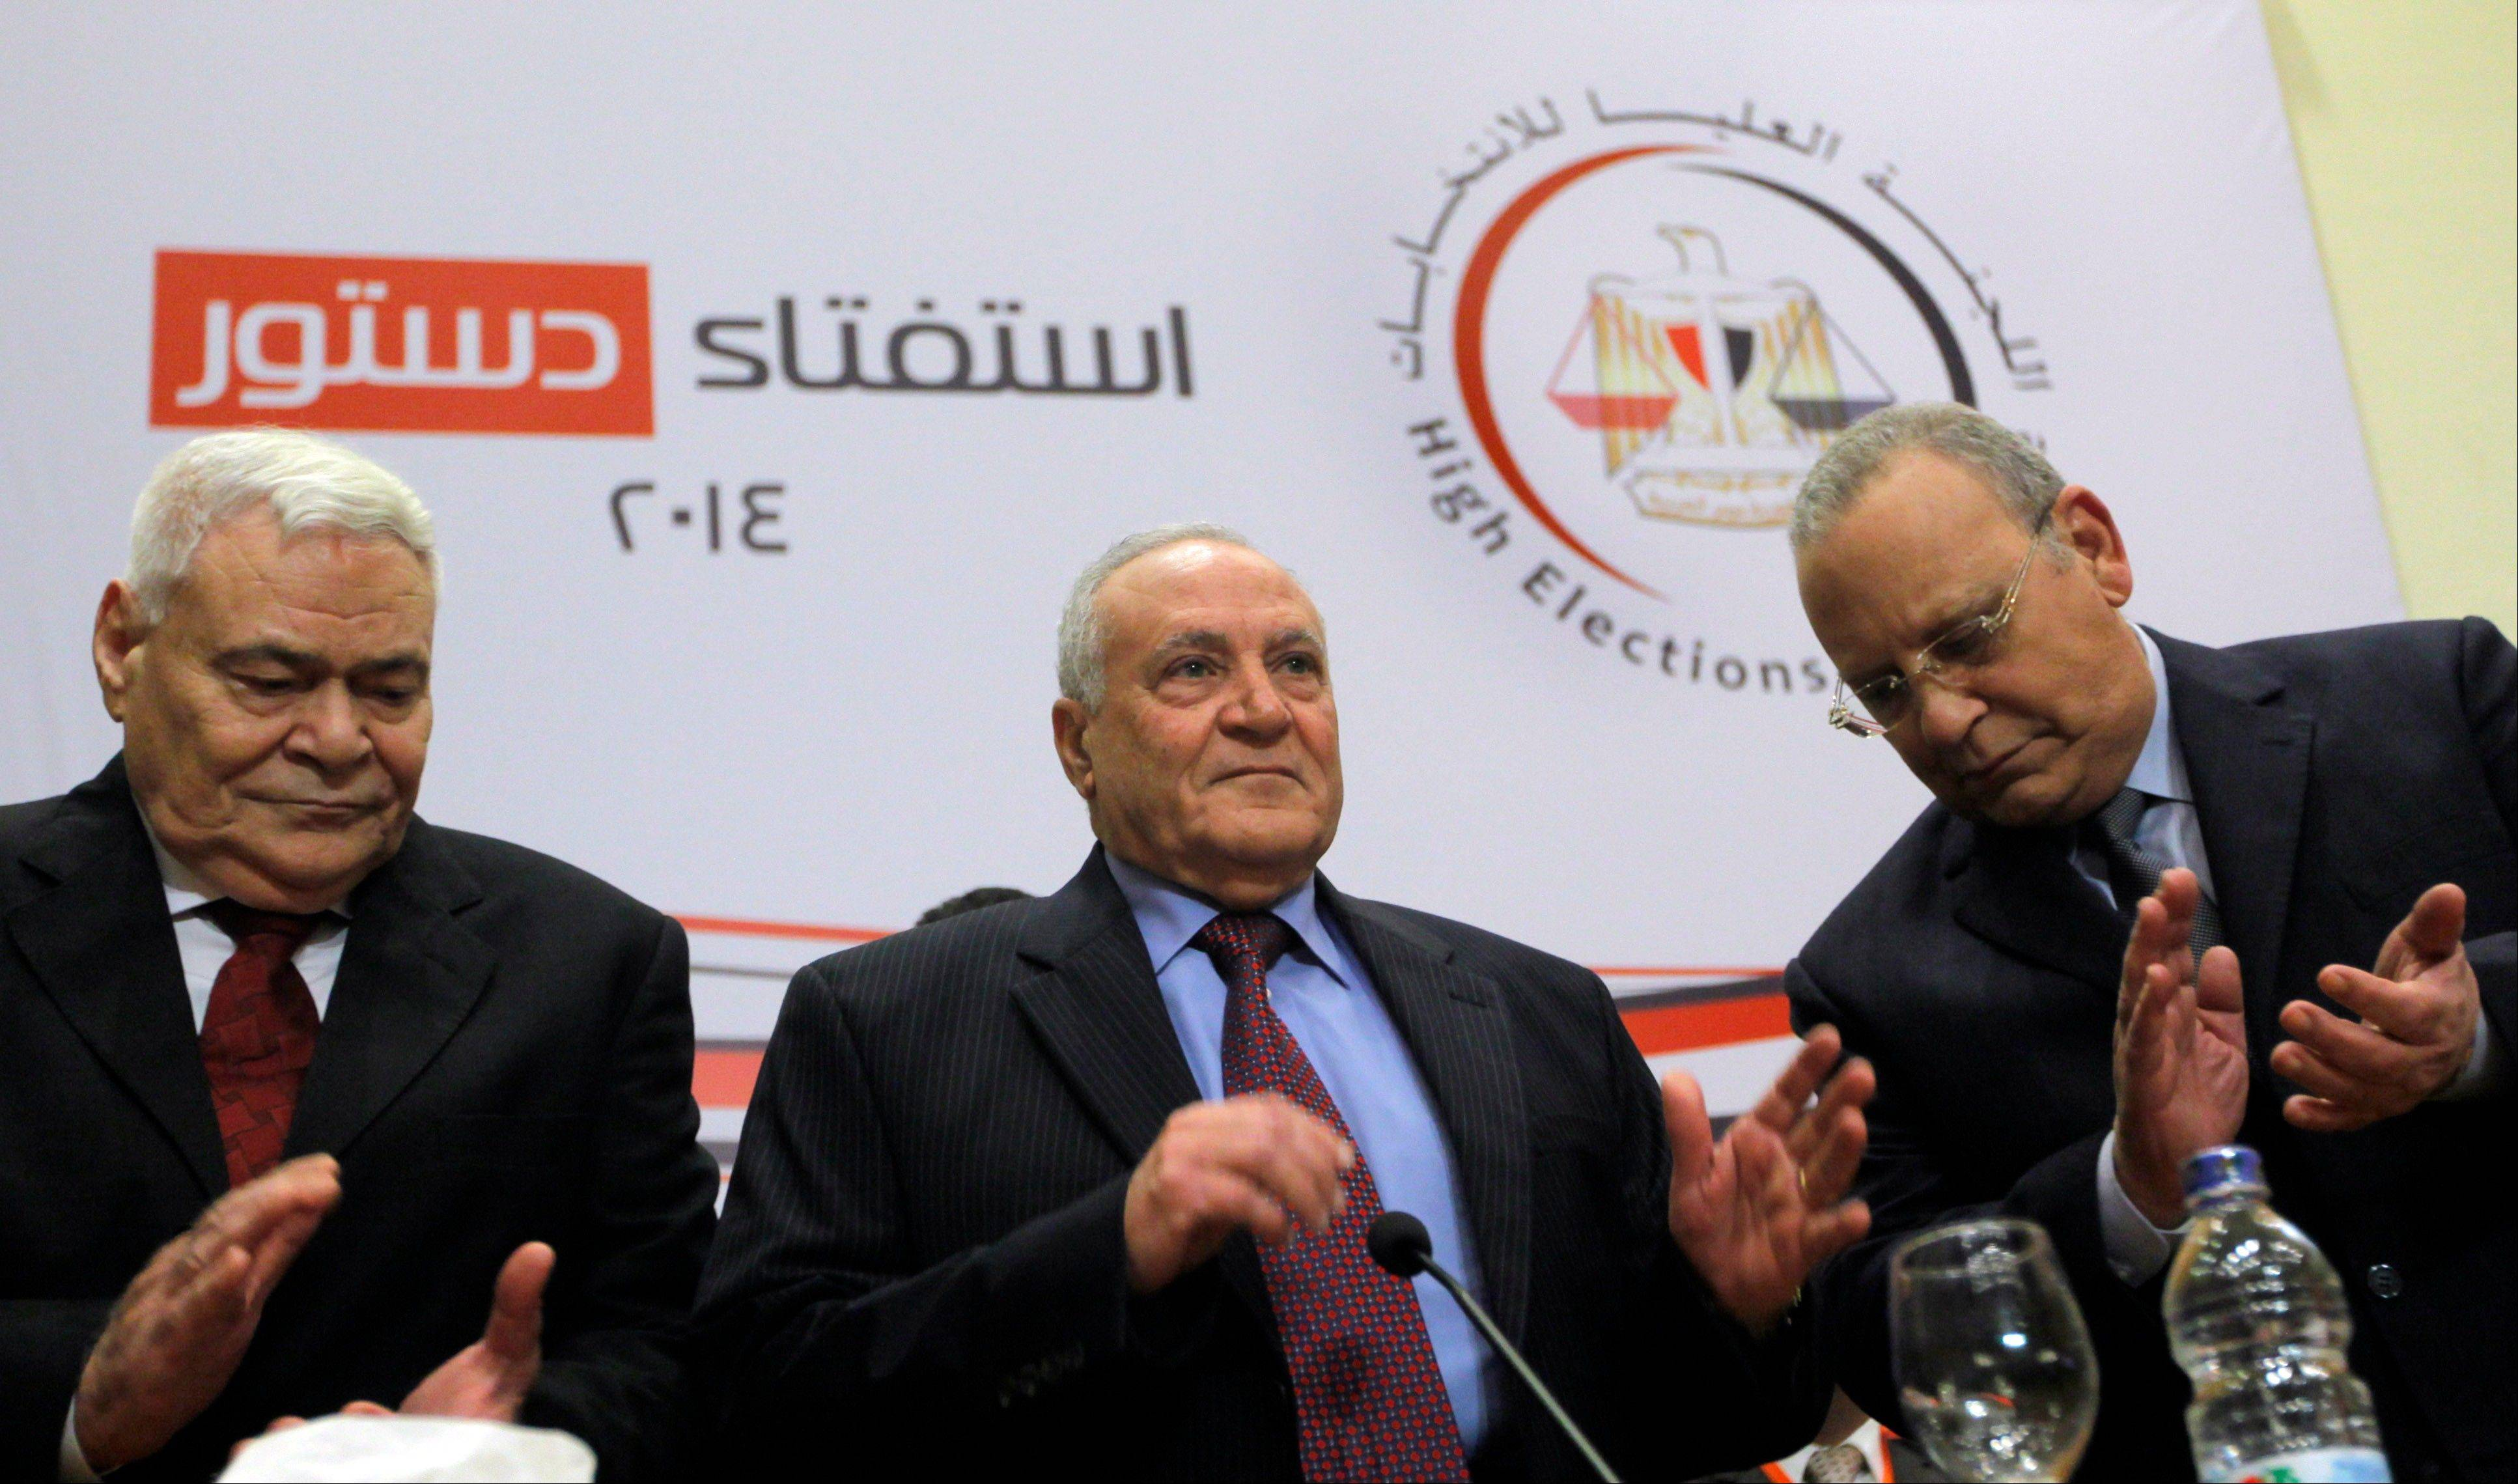 Judge Nabil Salib, head of Egypt's High Election Commission, center, is greeted by other members as he prepares to announce the voting results Saturday of a referendum on Egypt's military-backed constitution, in Cairo, Egypt.